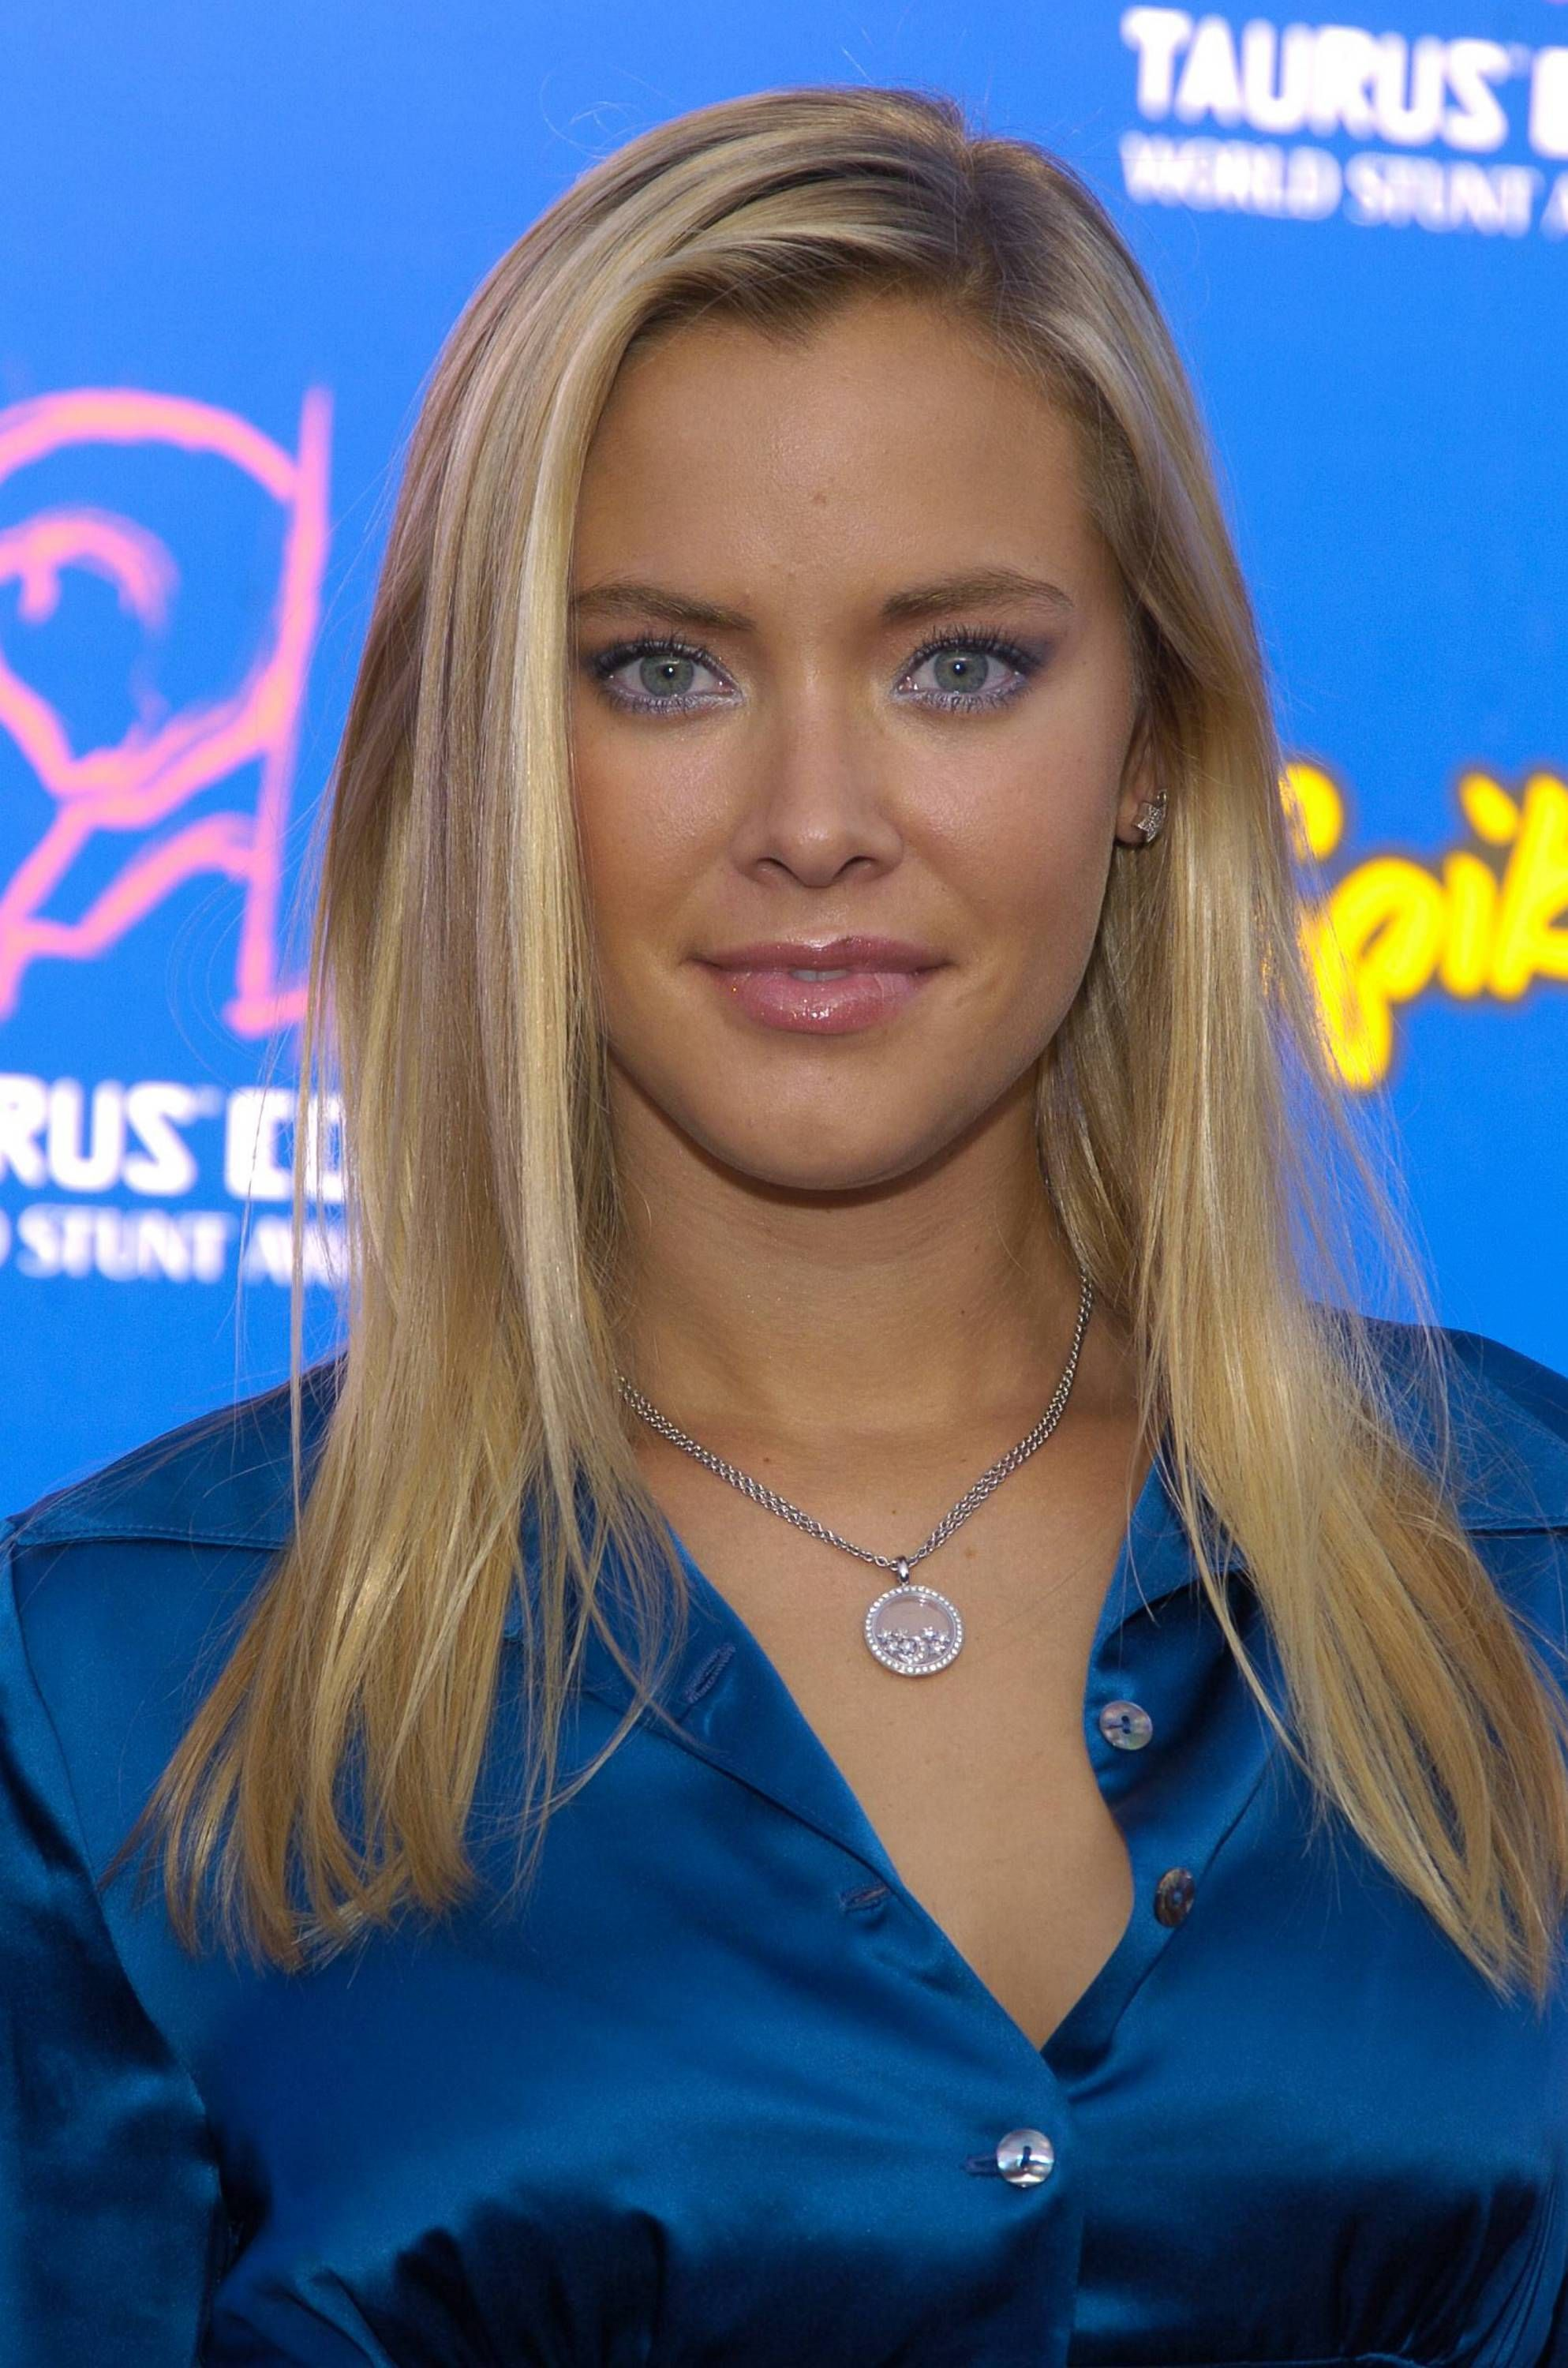 Pictures Kristanna Loken nudes (14 foto and video), Tits, Sideboobs, Instagram, see through 2006